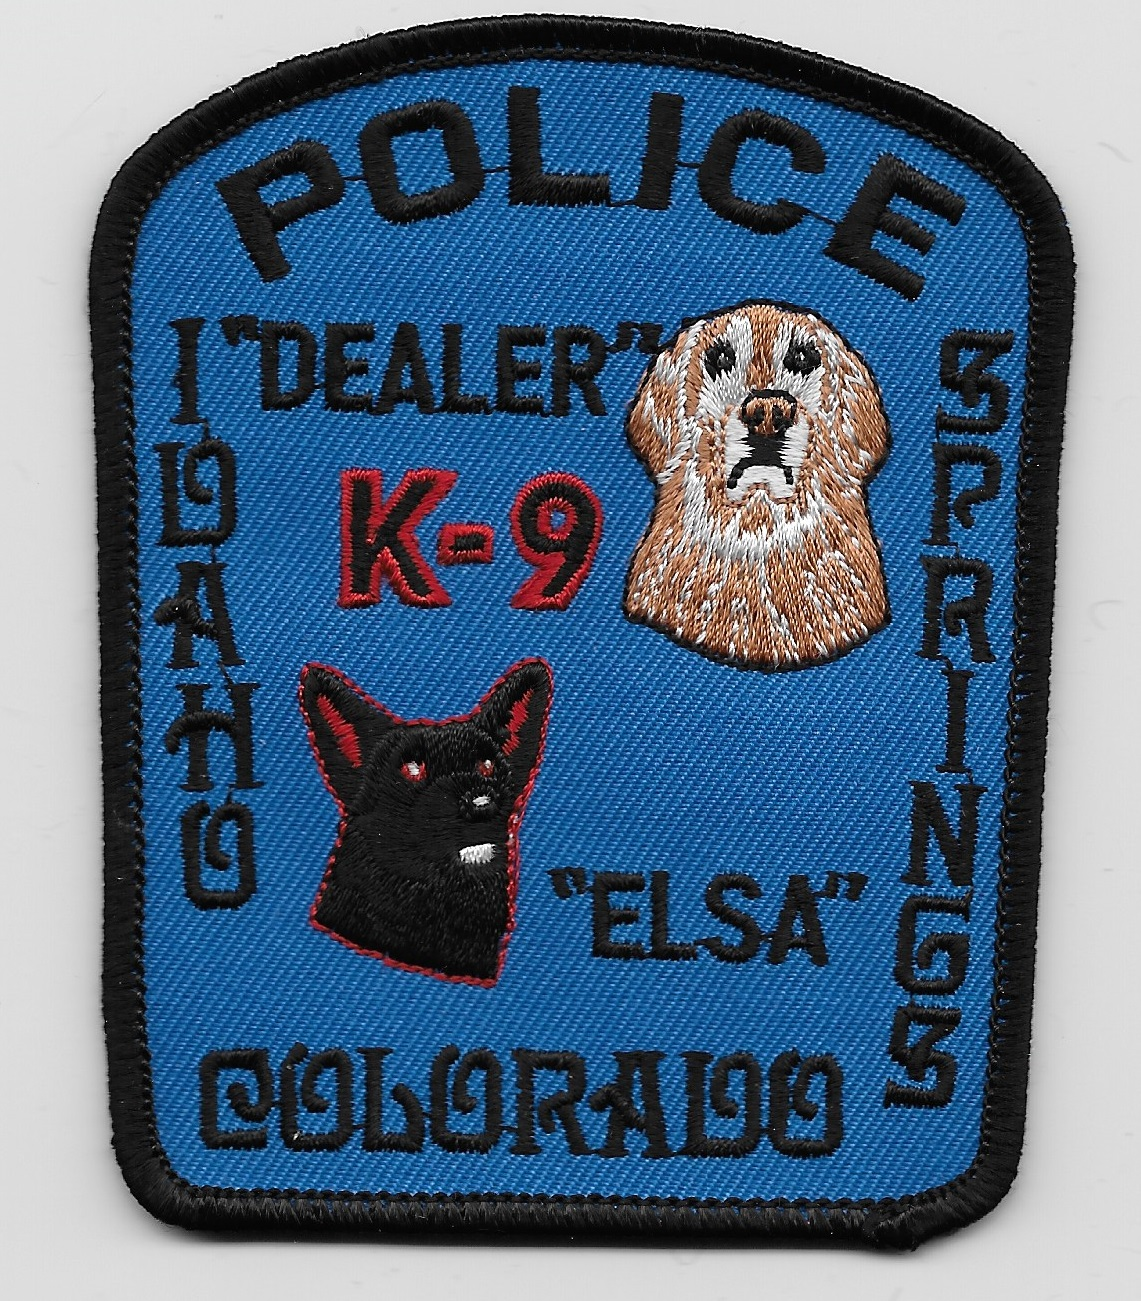 Idaho Spgs Police k9 CO